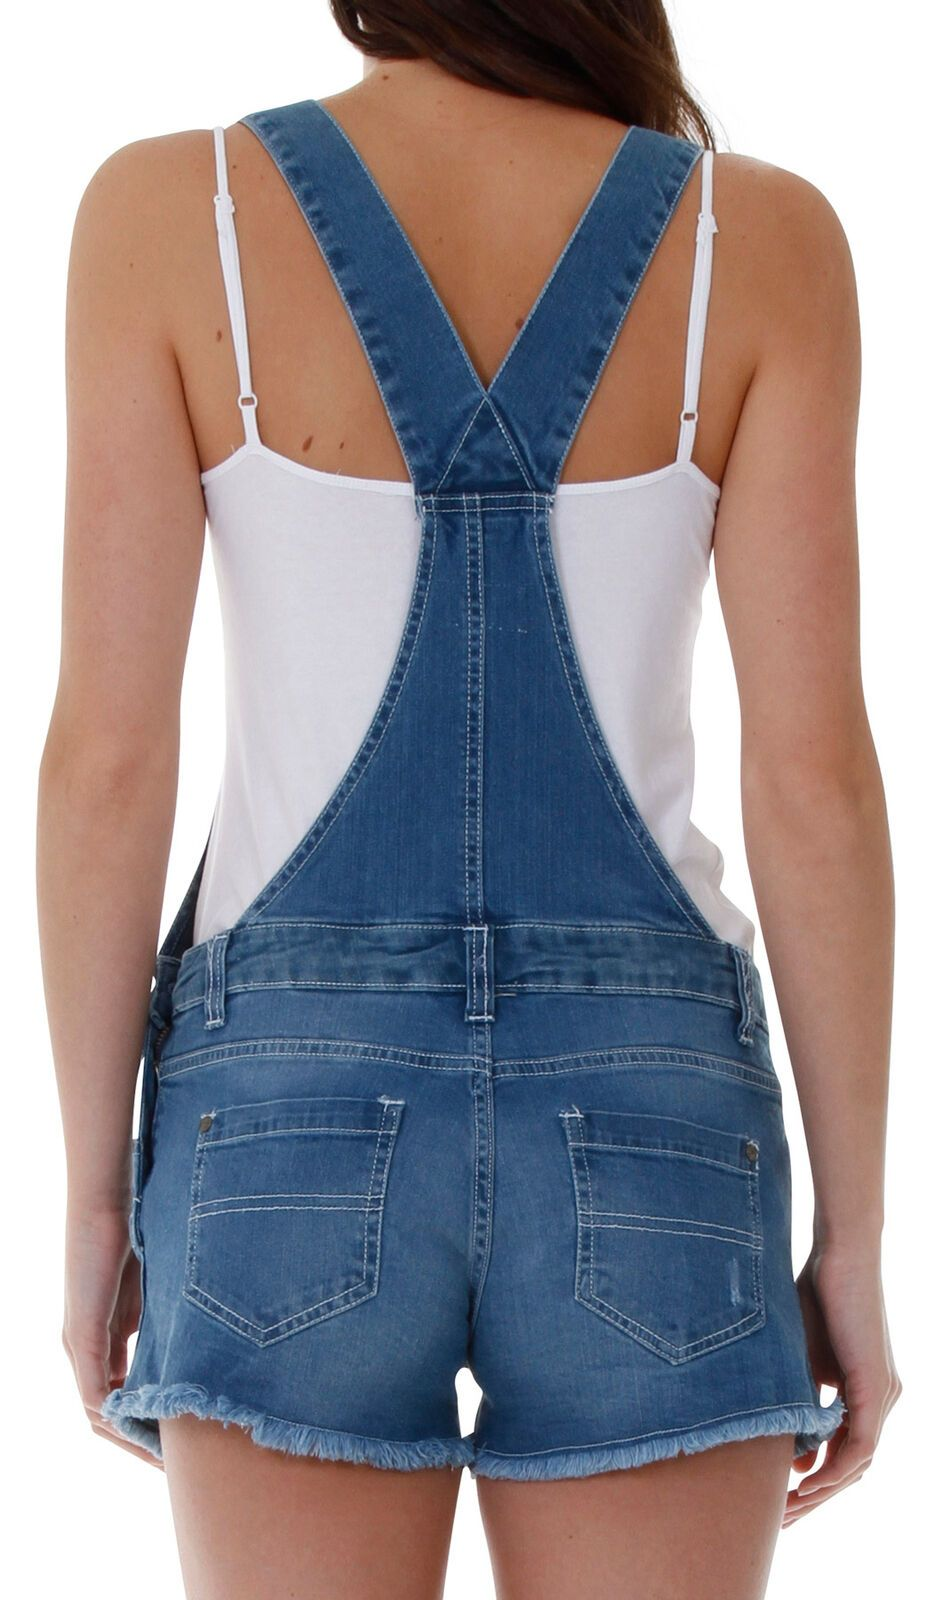 Top-half rear of stretch-denim bib-overall shorts from Dungarees Online with view of belt loops, straps and back pockets.